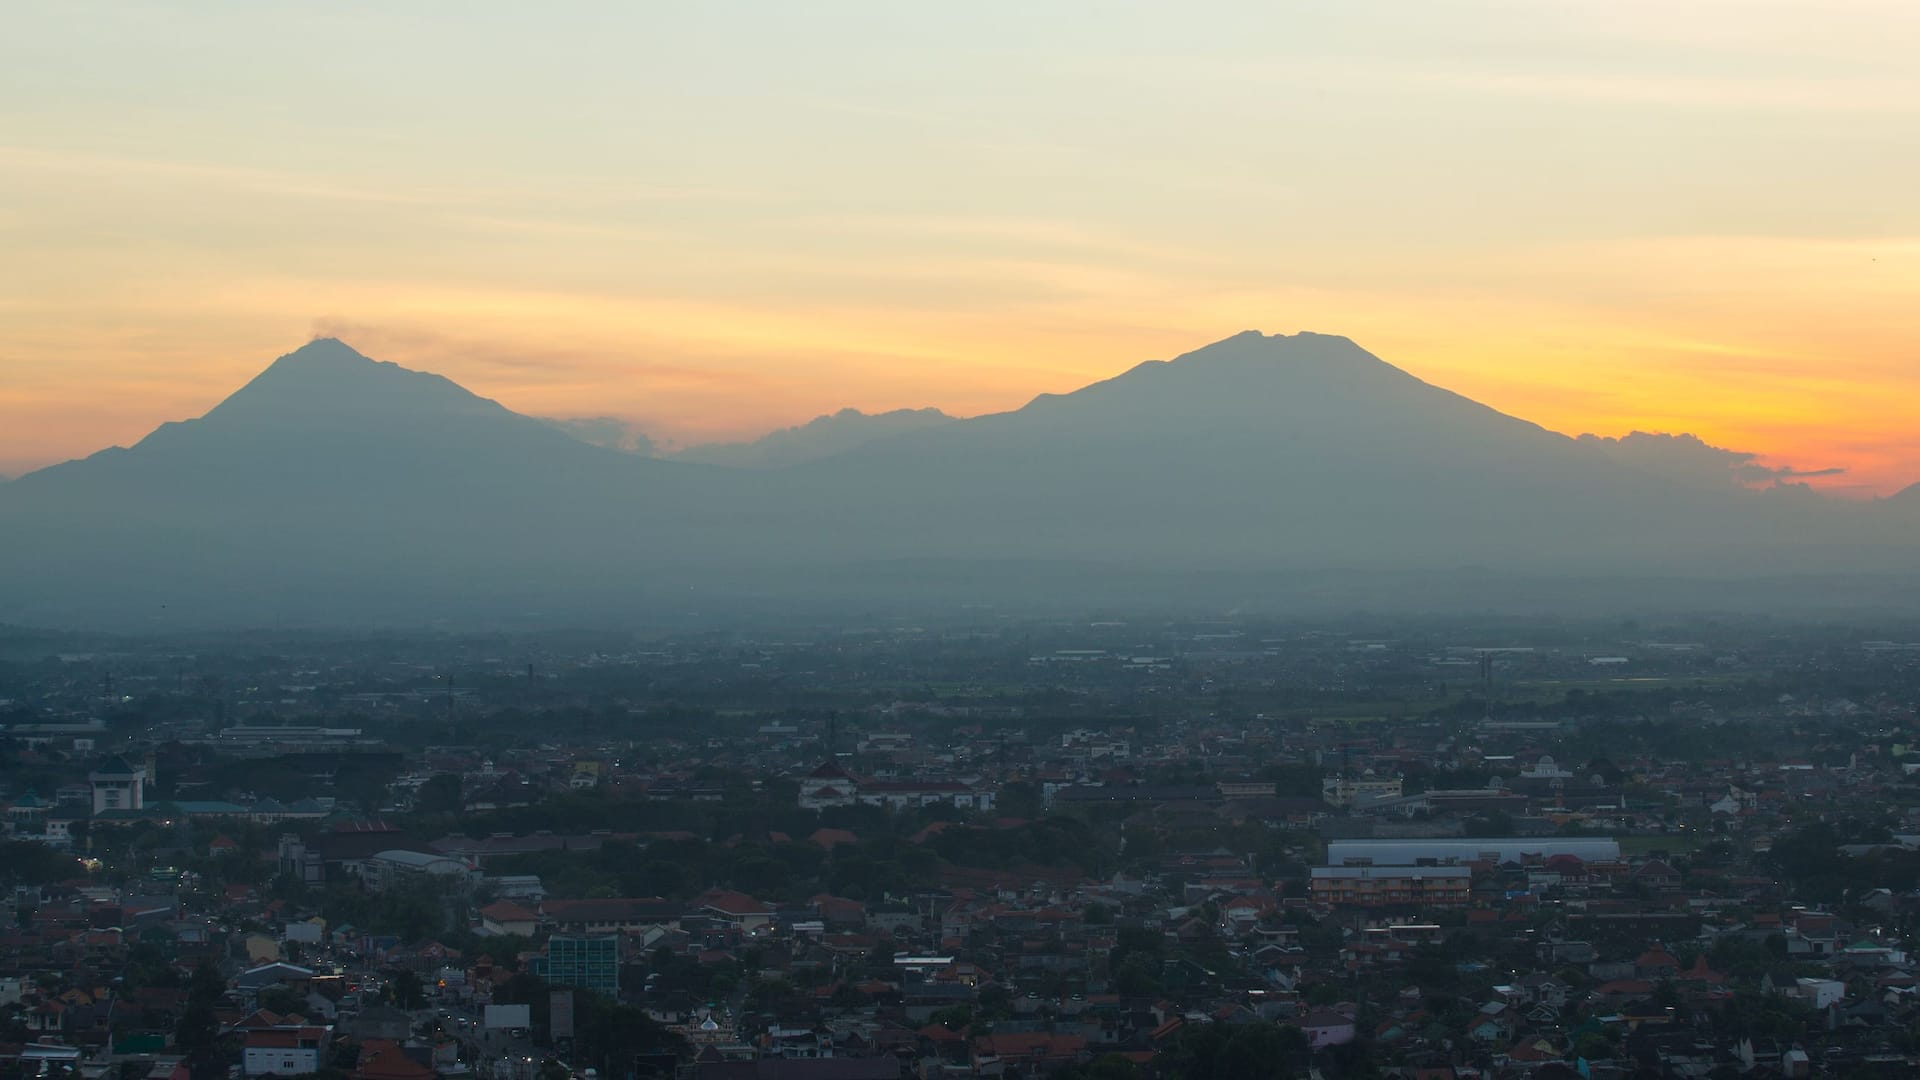 View of Mount Merapi and Mount Merbabu